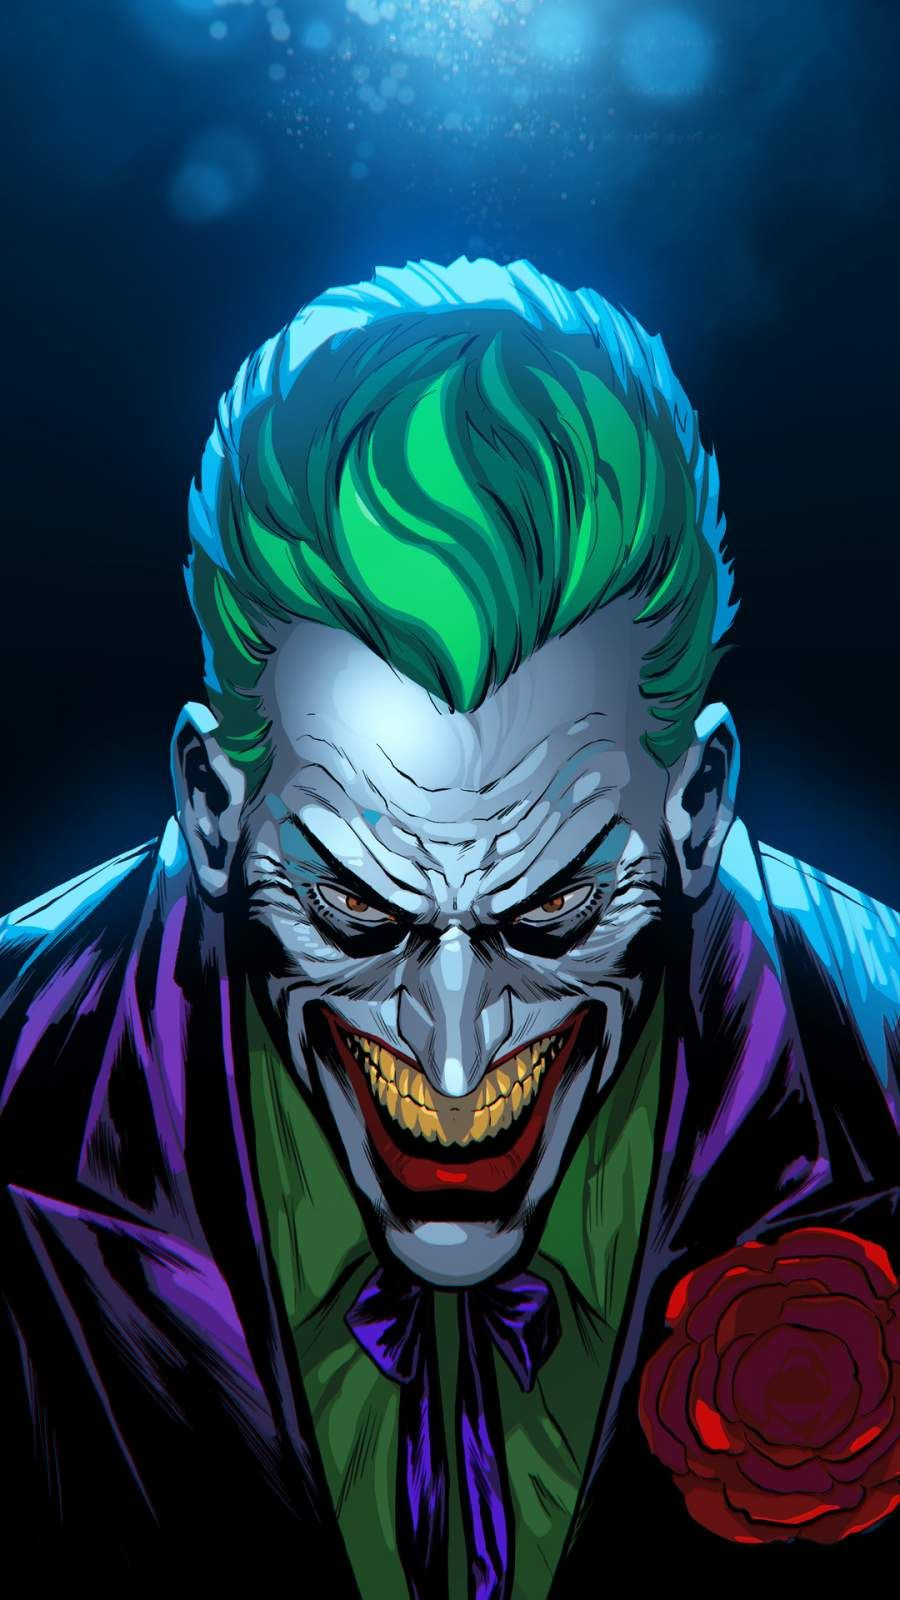 Joker Digital Art Iphone Wallpaper In 2020 Joker Hd Wallpaper